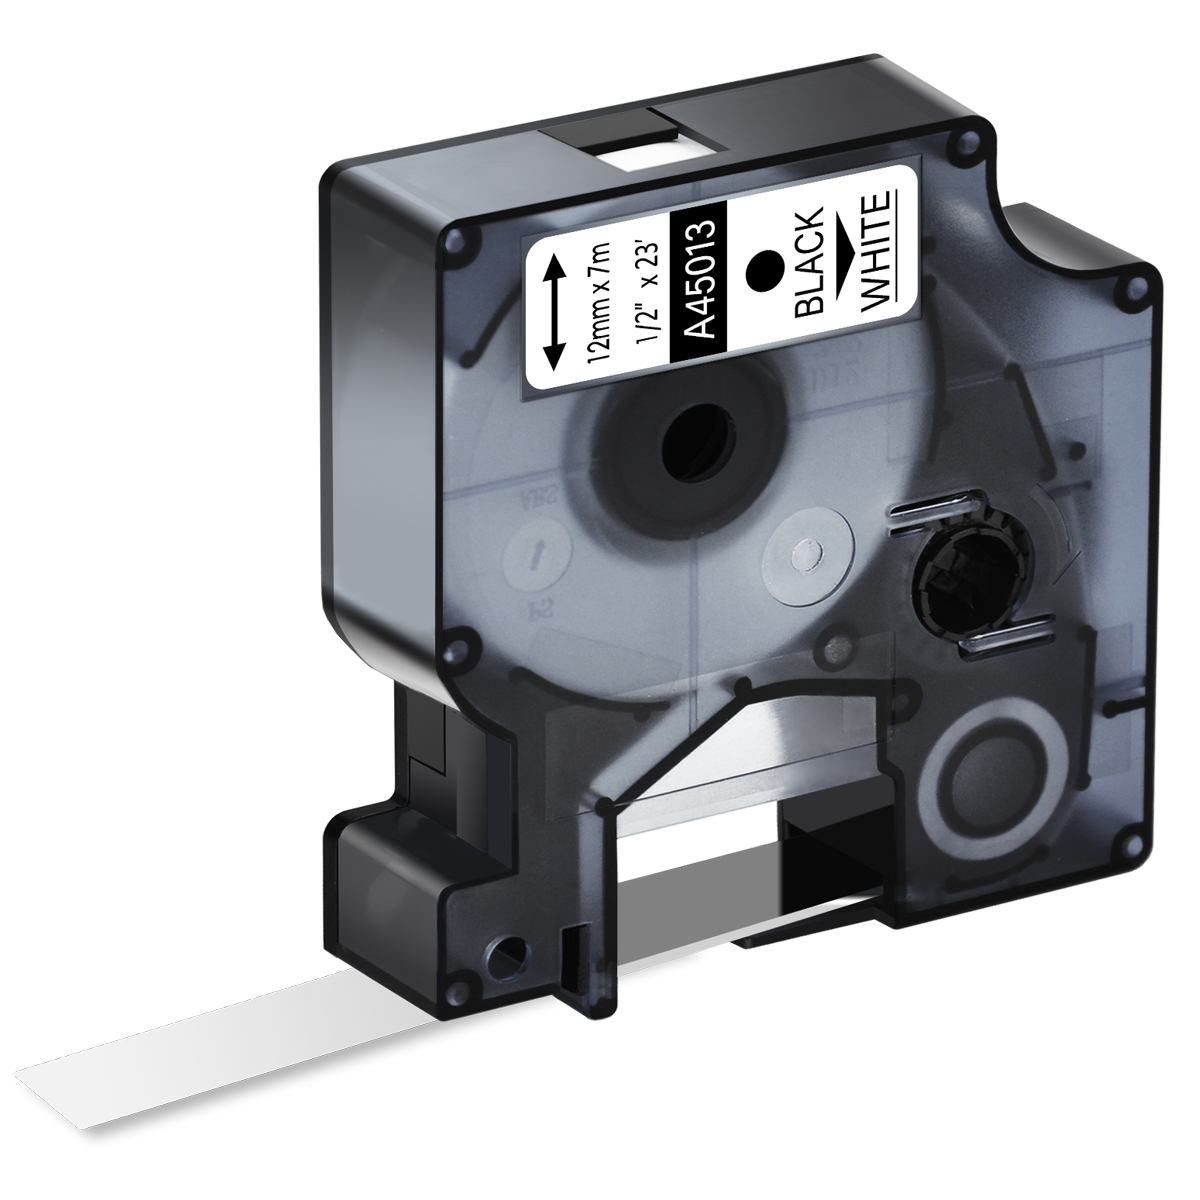 5 PK Black on White Label Tape For Dymo D1 45013 LabelManager 160 200 12mm 1//2/'/'